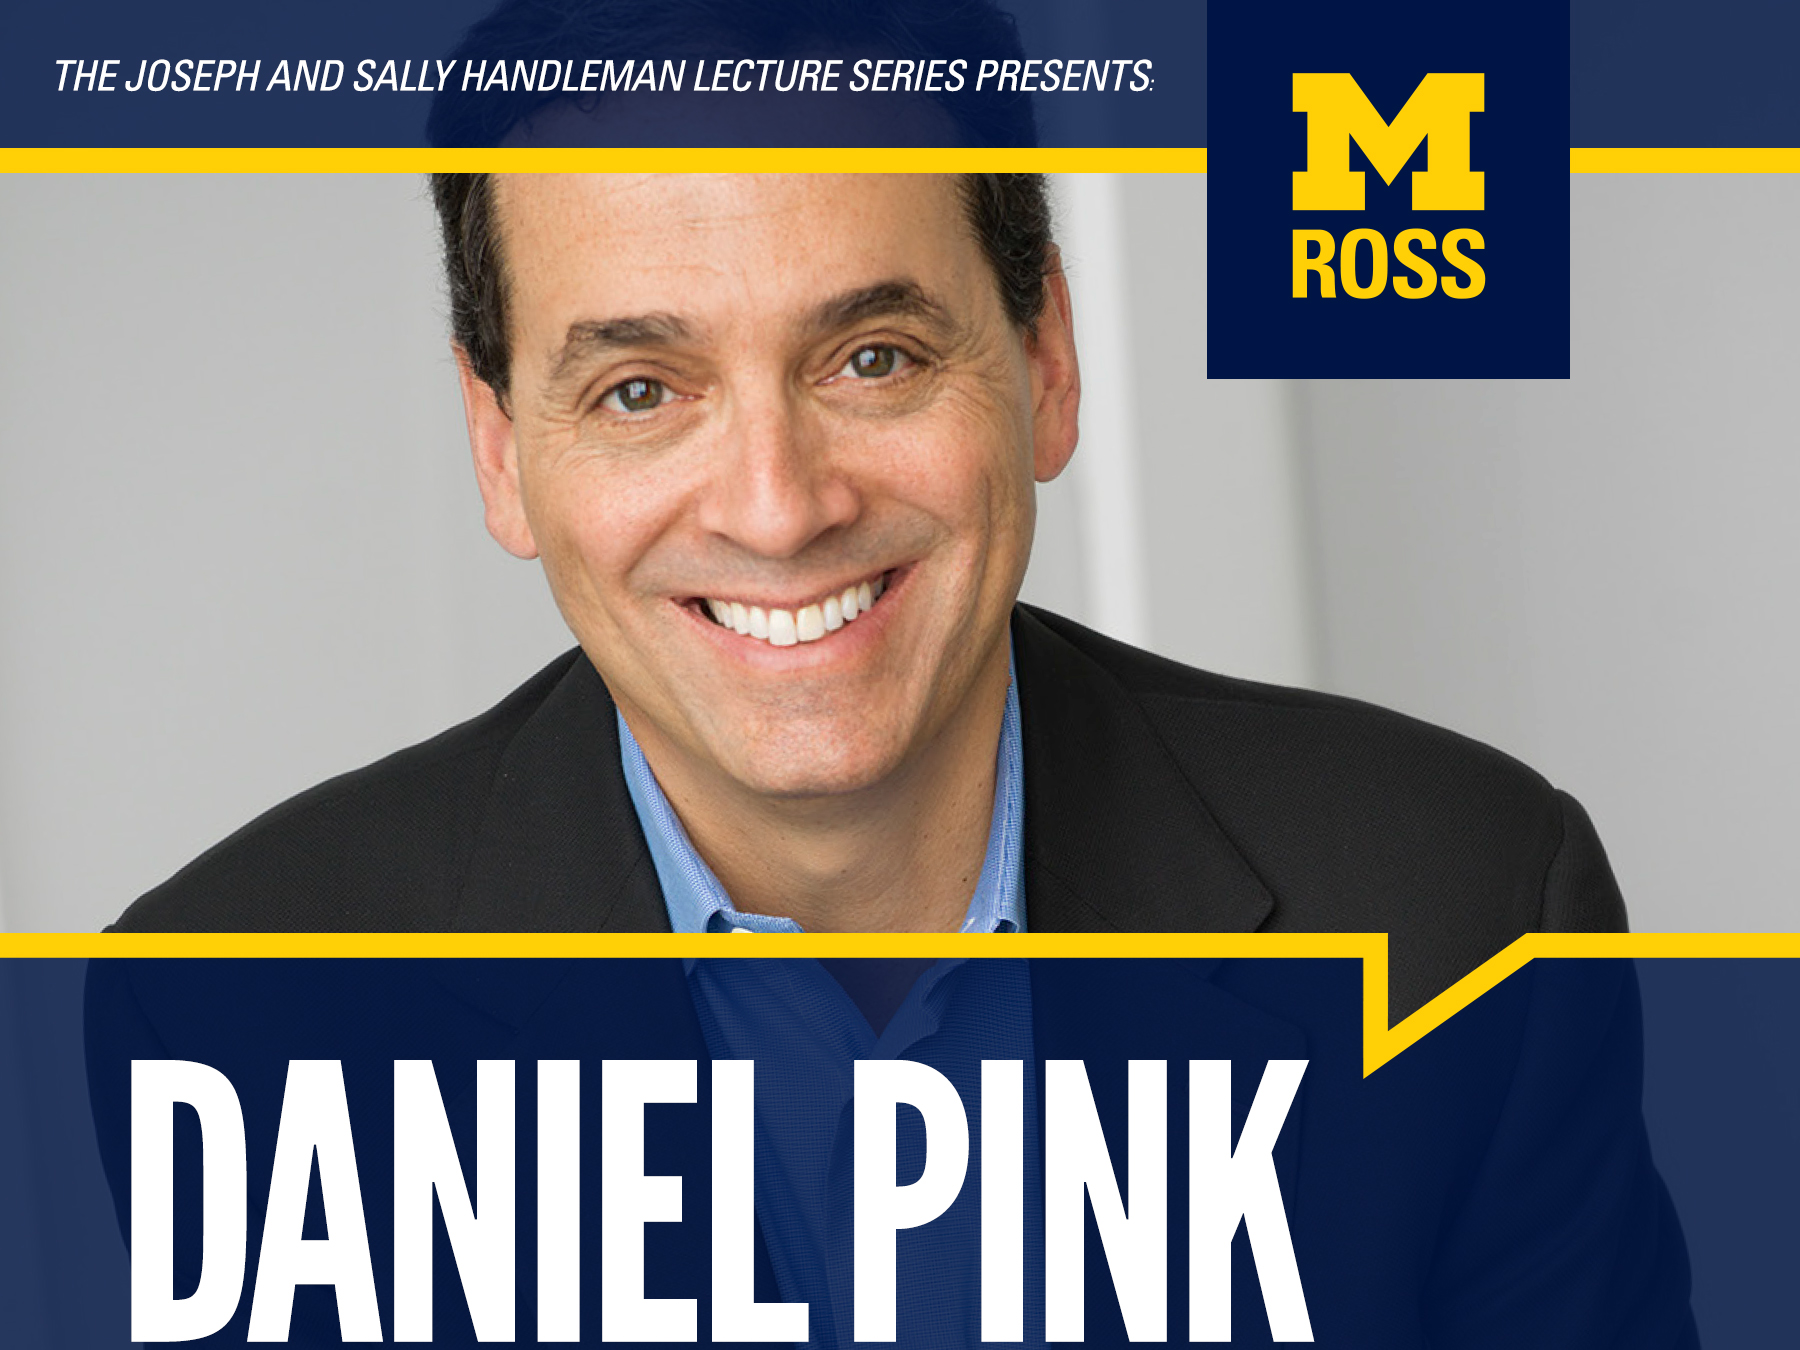 Daniel Pink to Speak at the University of Michigan - Scott Livengood